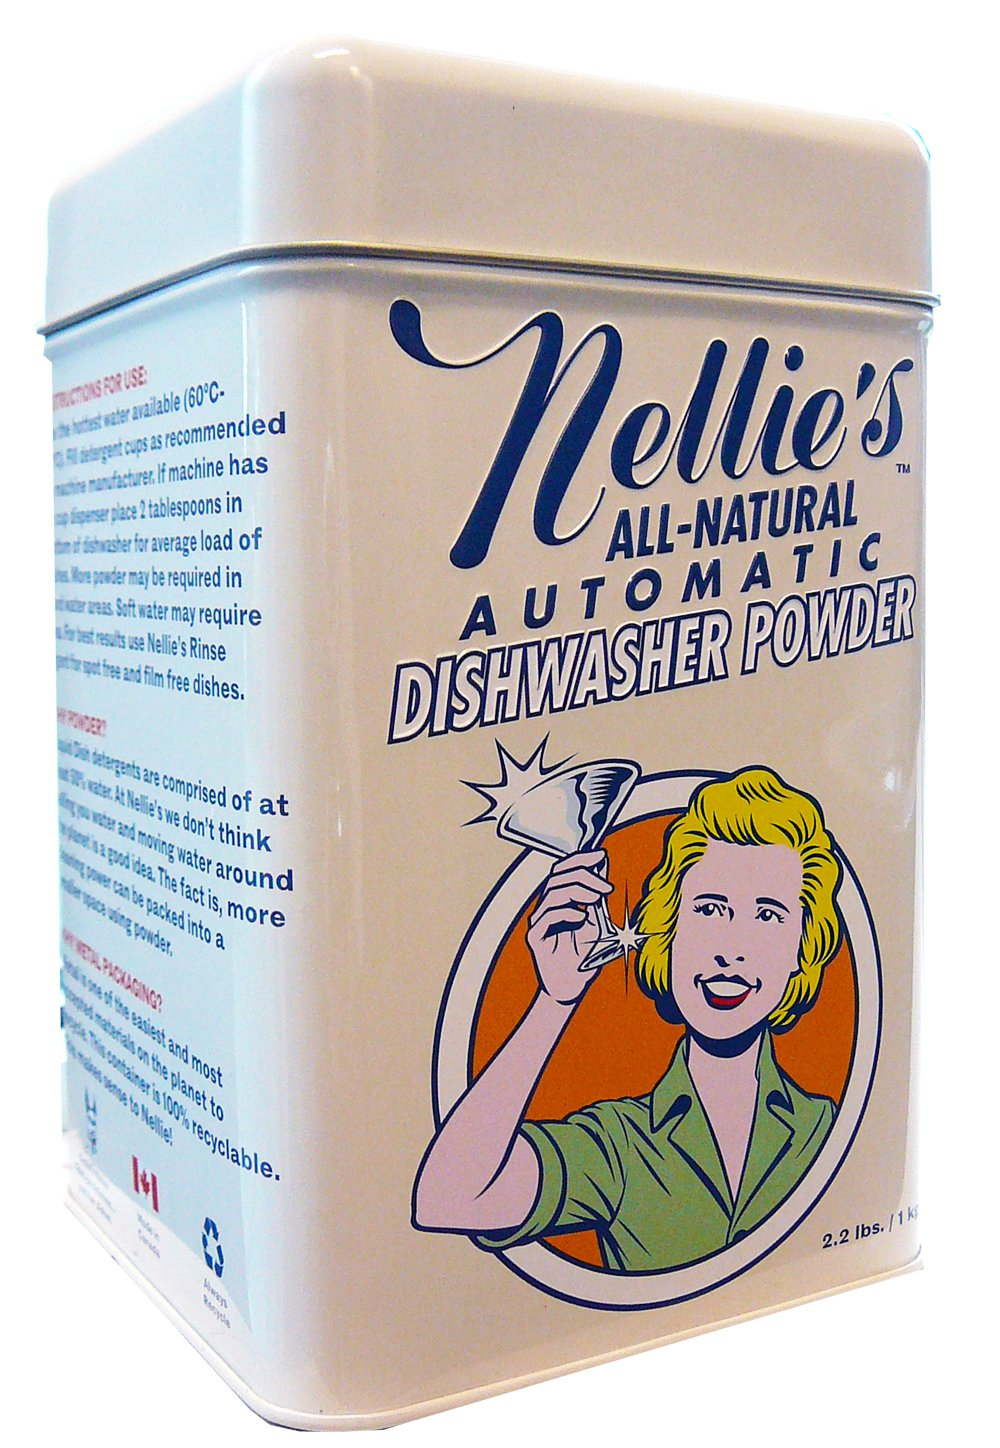 Nellie's Dishwasher Powder - 2.2lbs (80 Scoops)